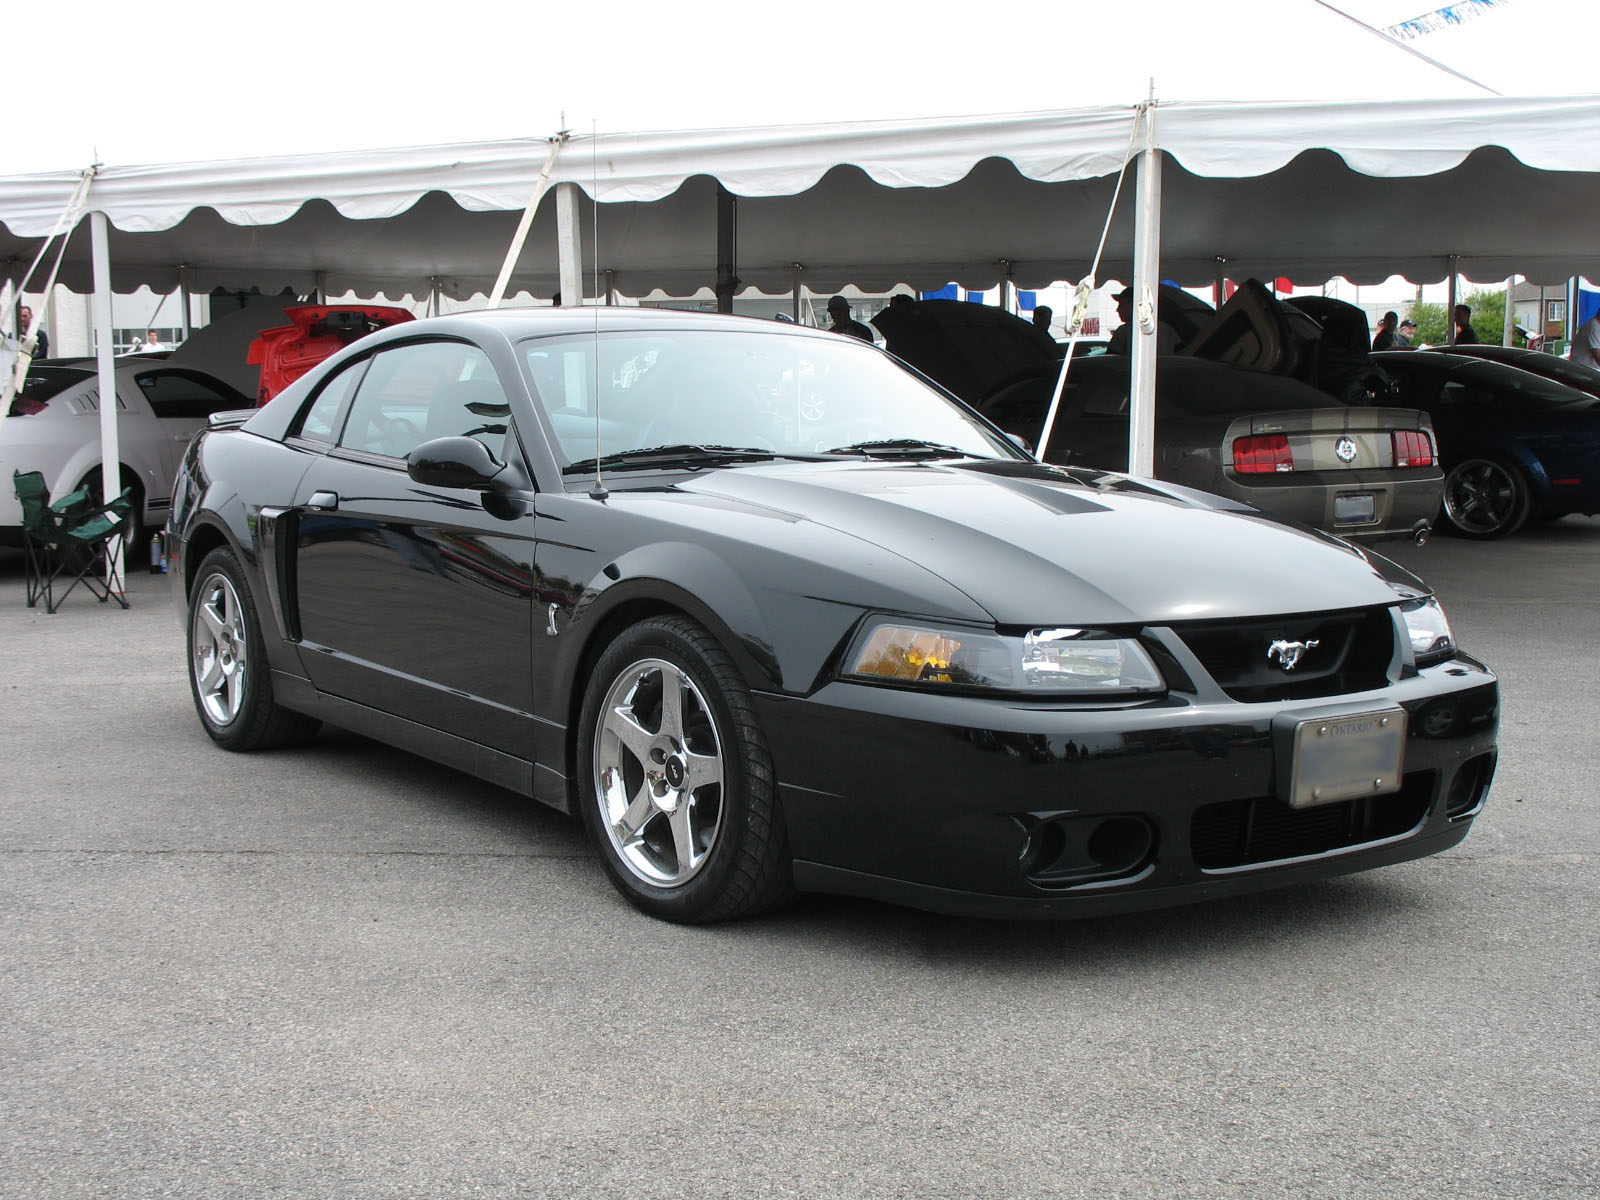 Fileblack 2003 2004 ford mustang iv svt cobra jpg